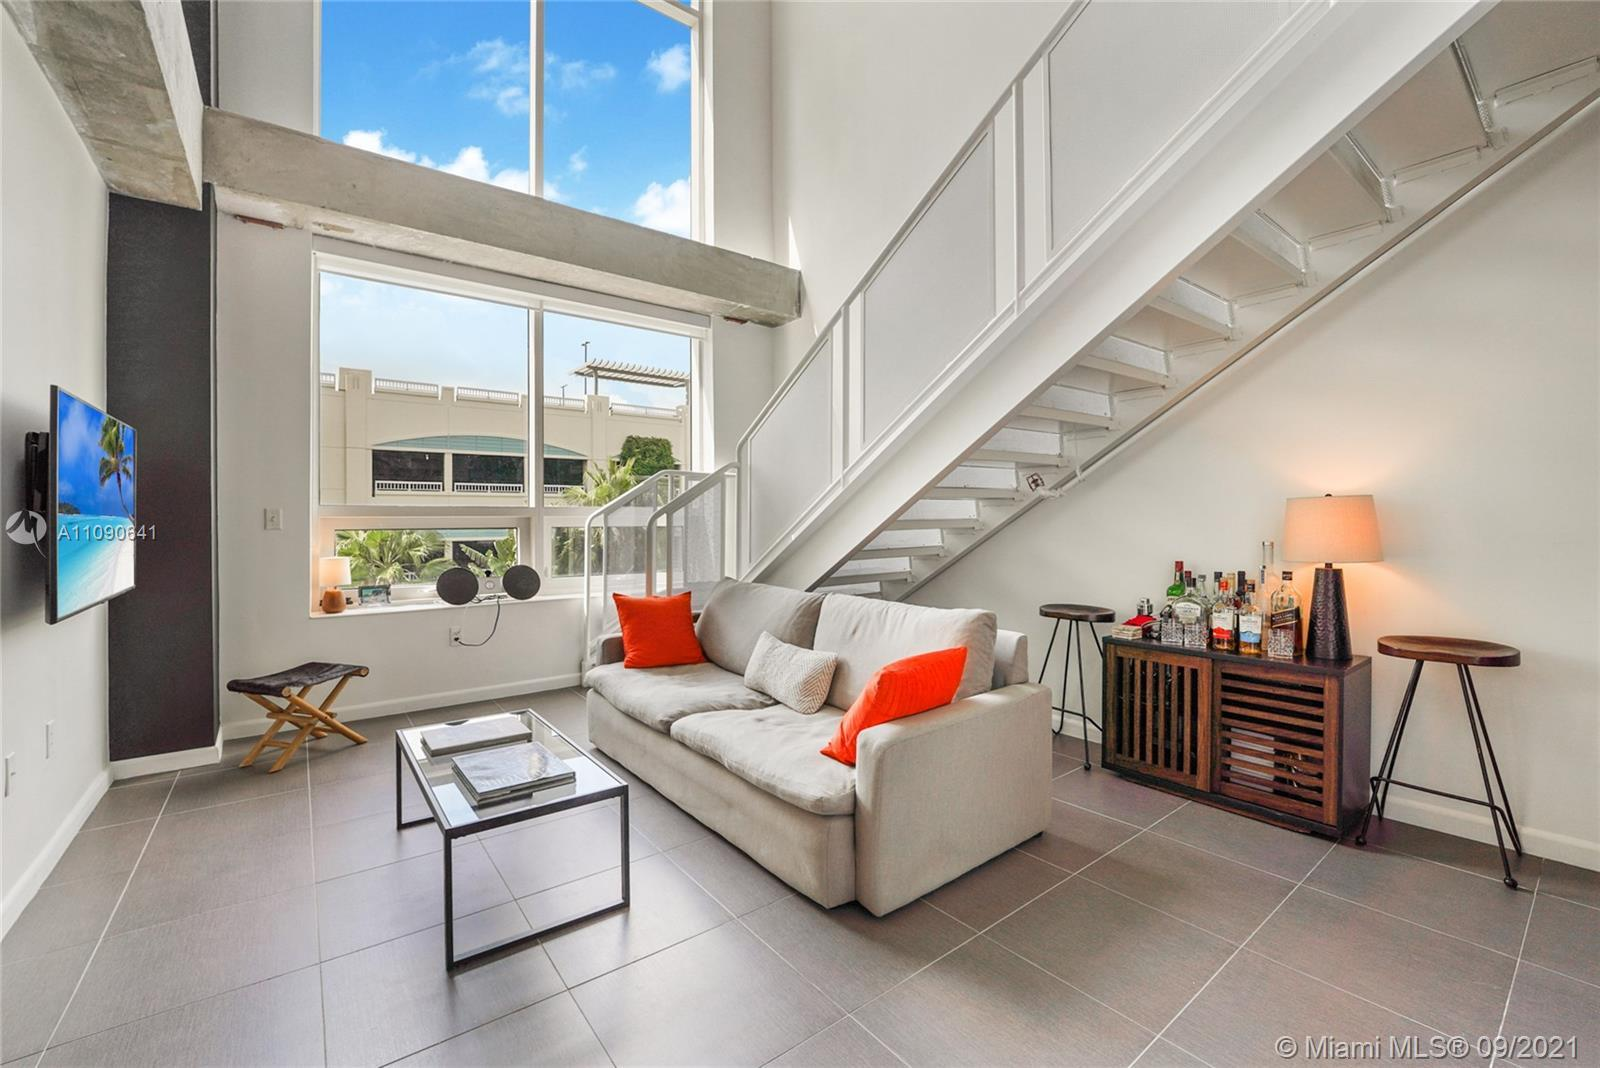 Modern and spacious loft with industrial details, soaring-high ceilings, two balconies, custom light